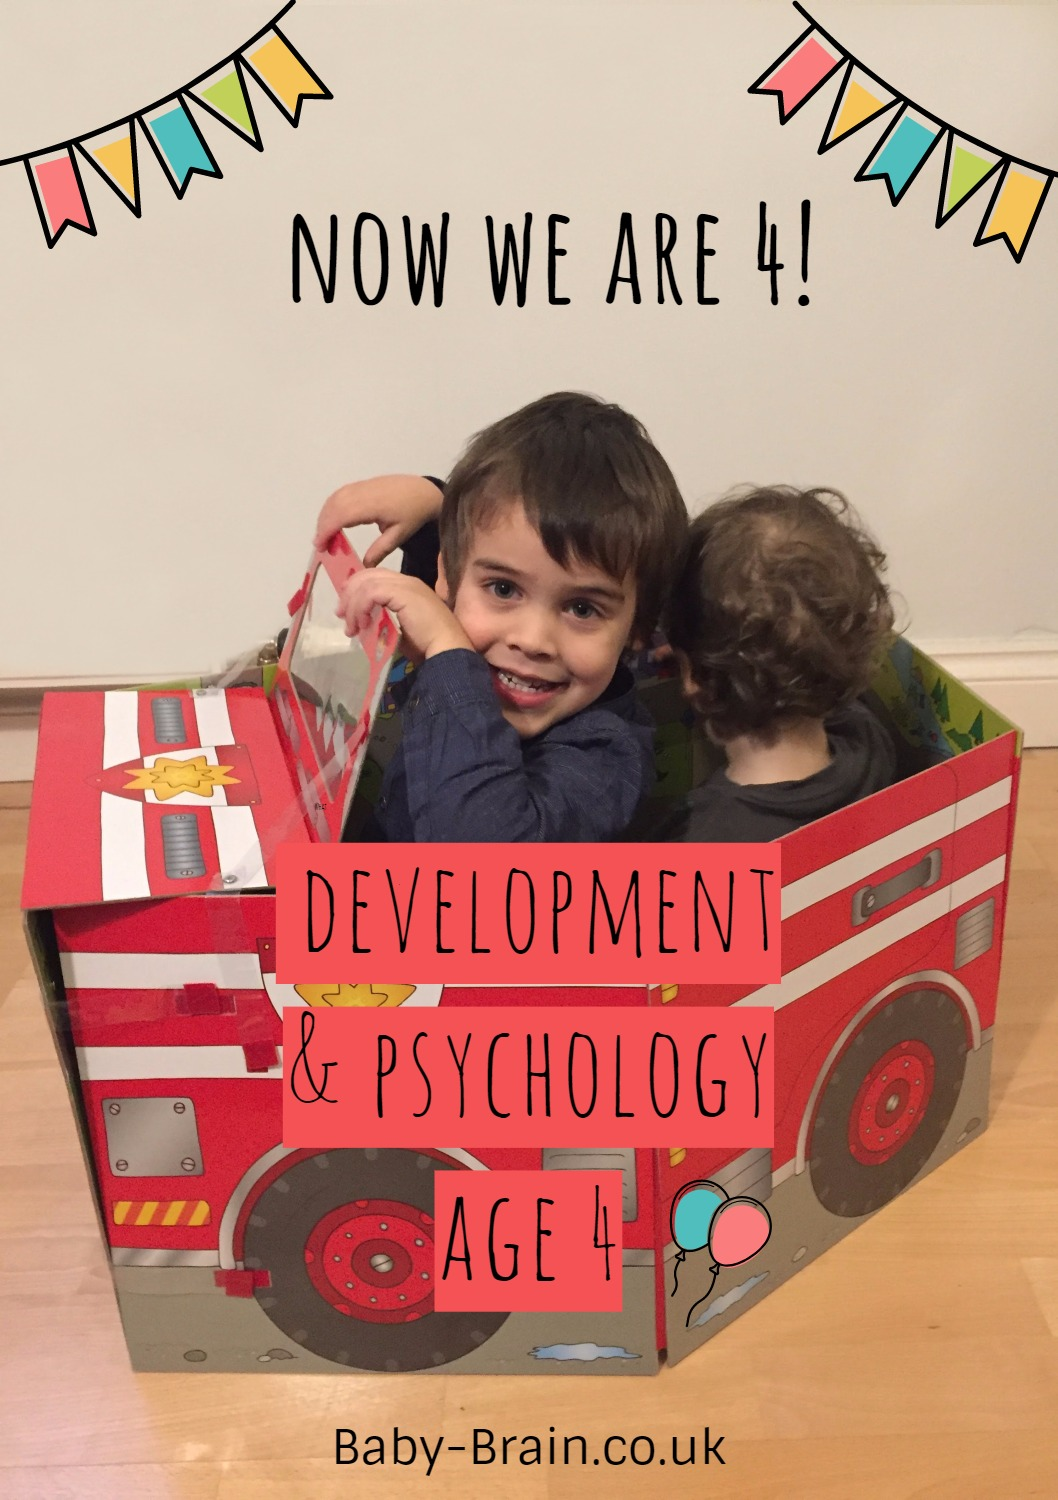 Development & Psychology aged 4 - what can we expect?